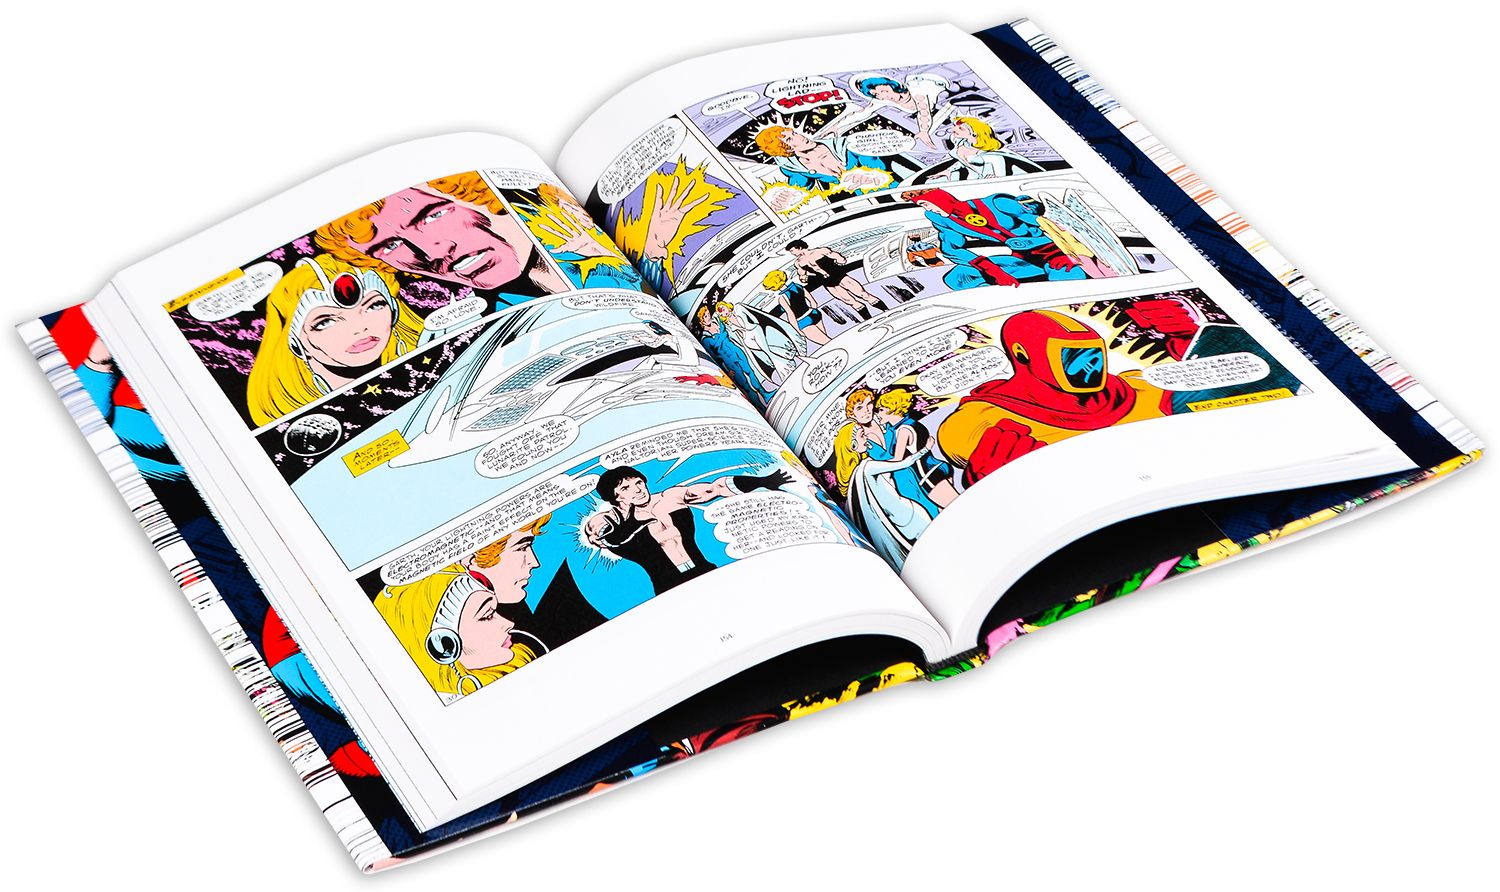 Superboy and the Legion of Super-Heroes Vol. 1-2 - 3